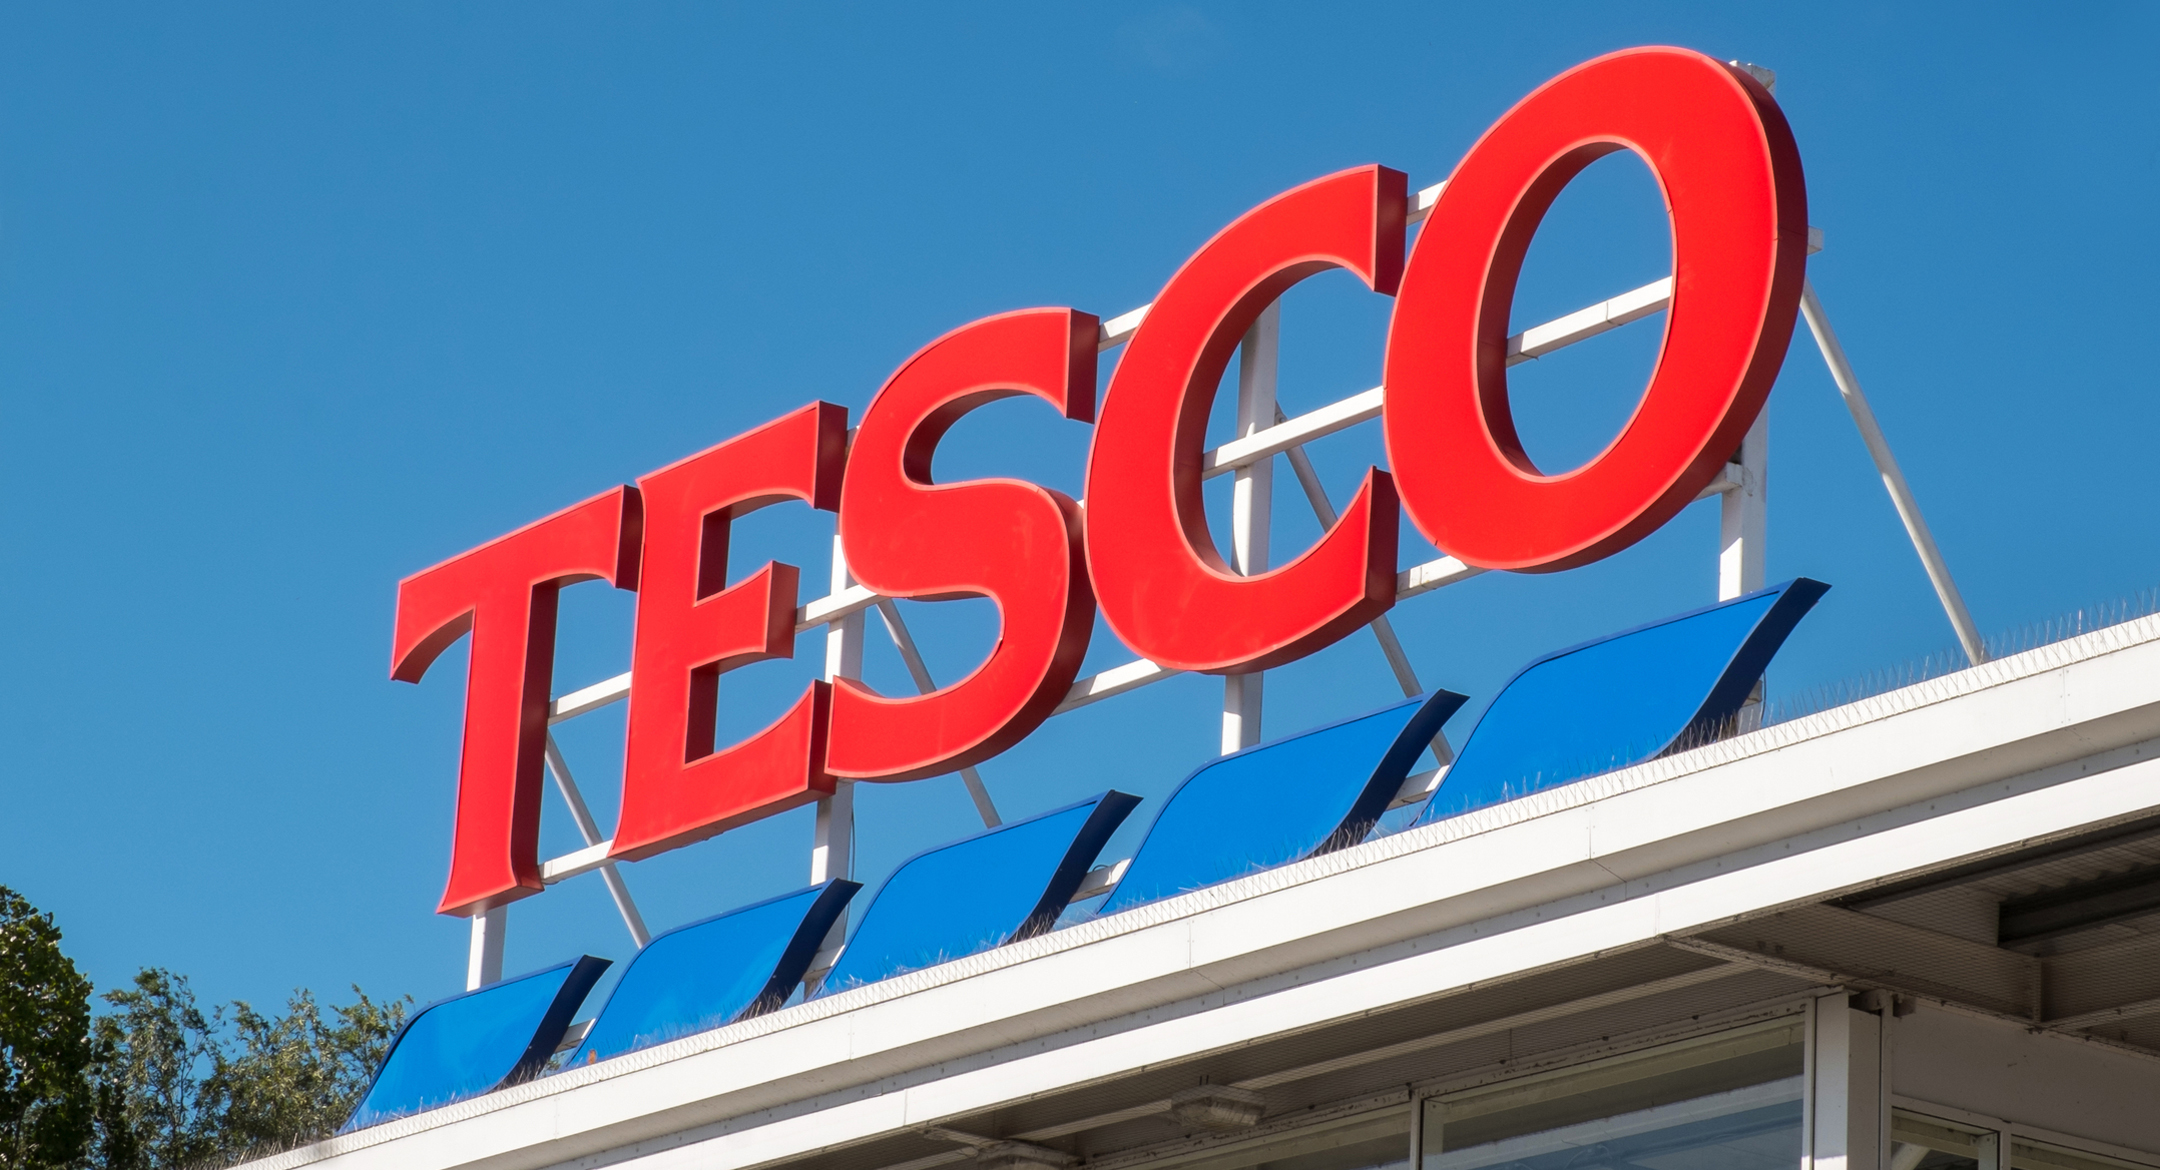 Tesco Confirms Fish Deli Counters At 90 Stores Will Close